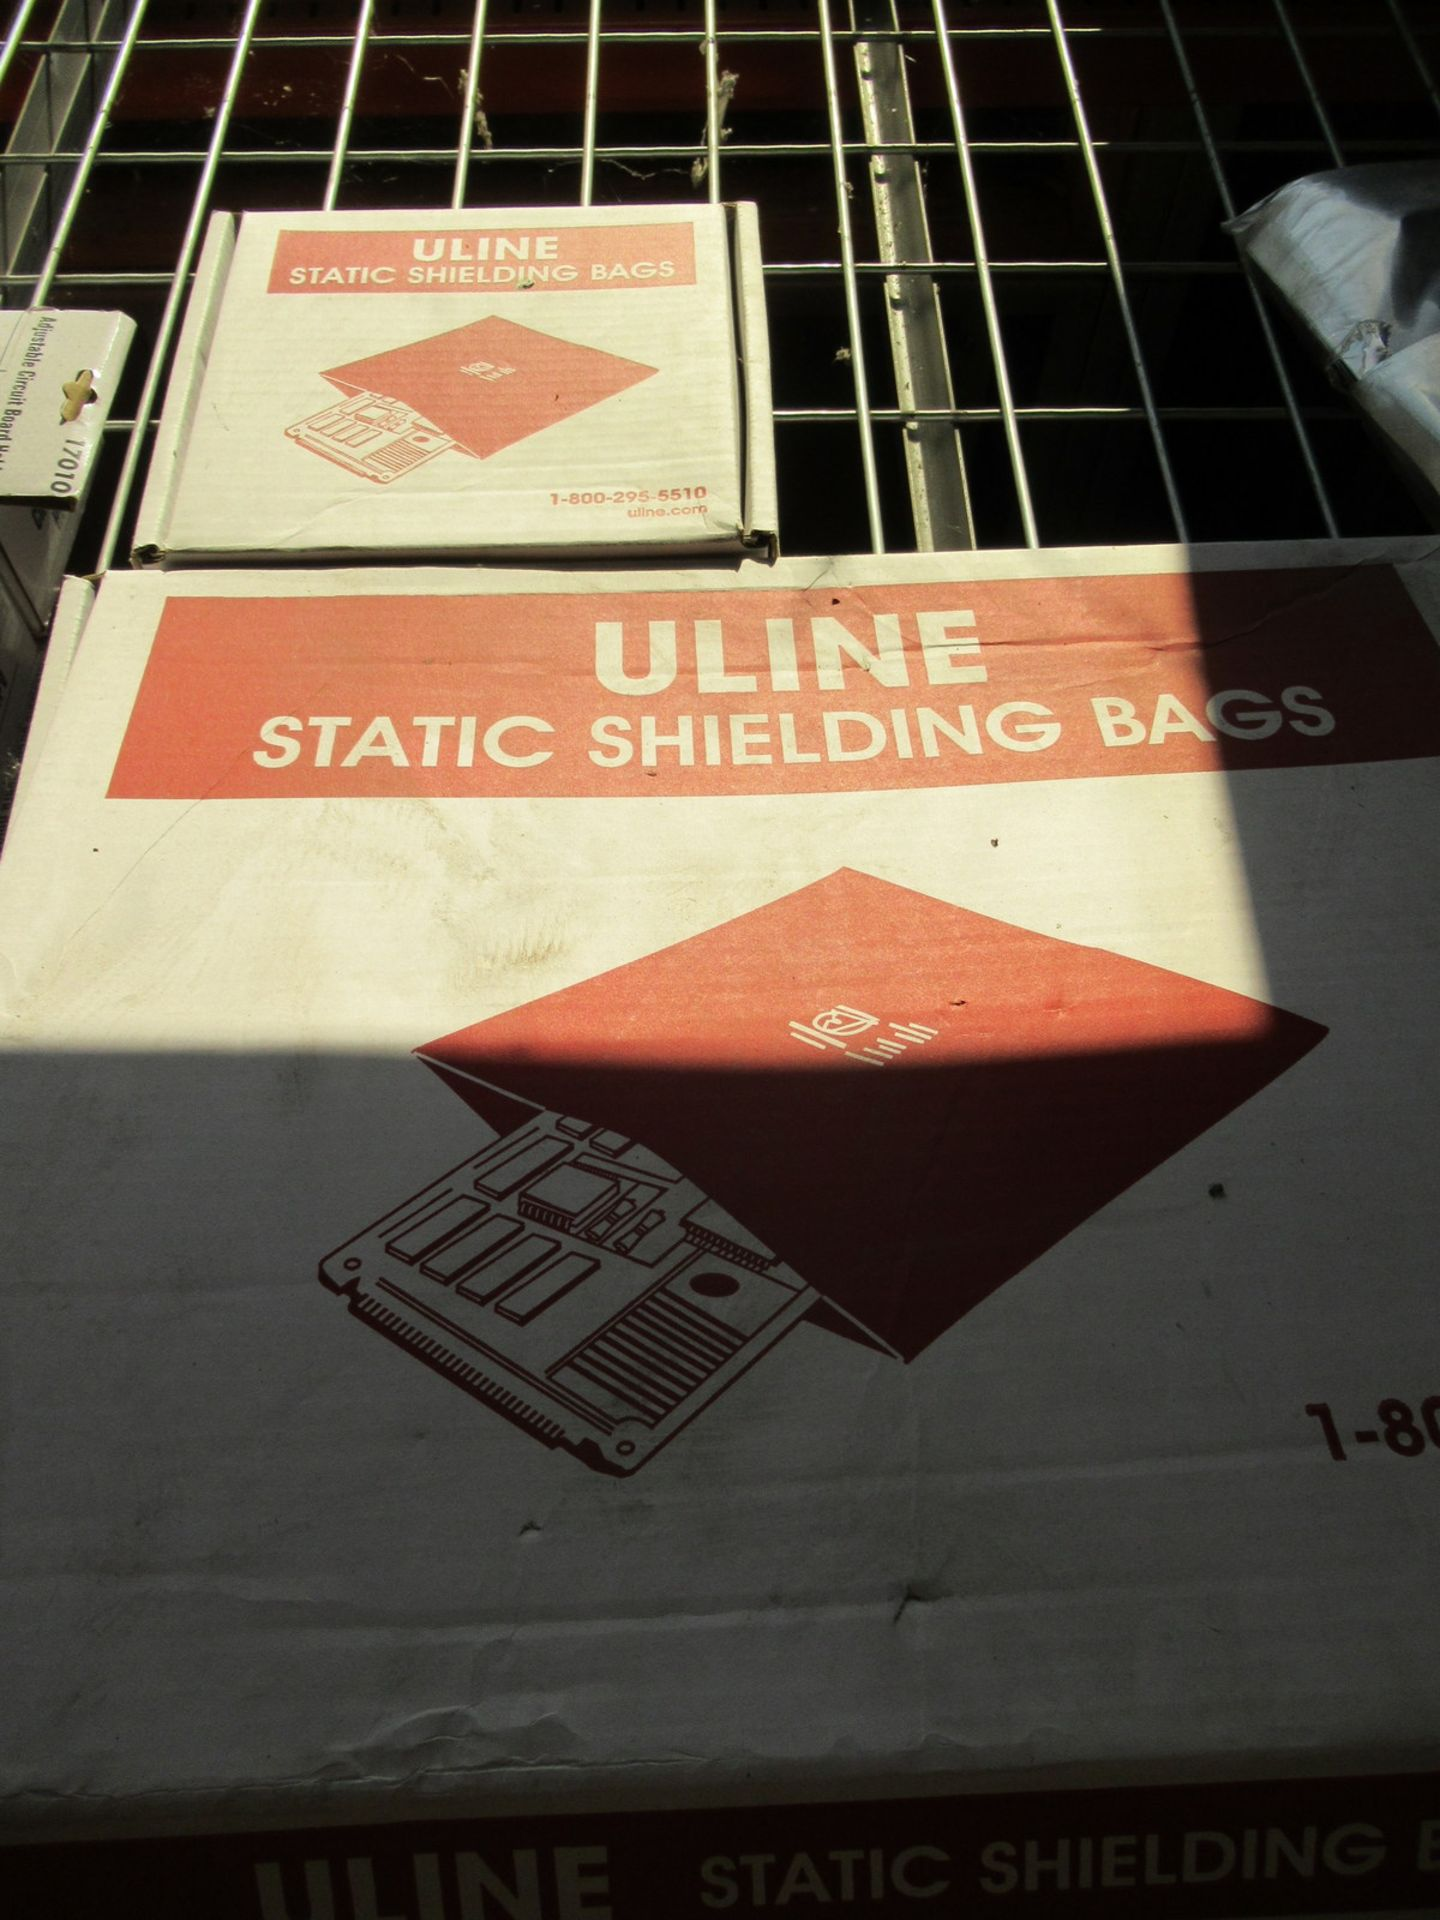 Lot 232 - Aven Adjustable Circuit Board Holders, Uline Static Shielding Bags, and Assorted Cables and Wires